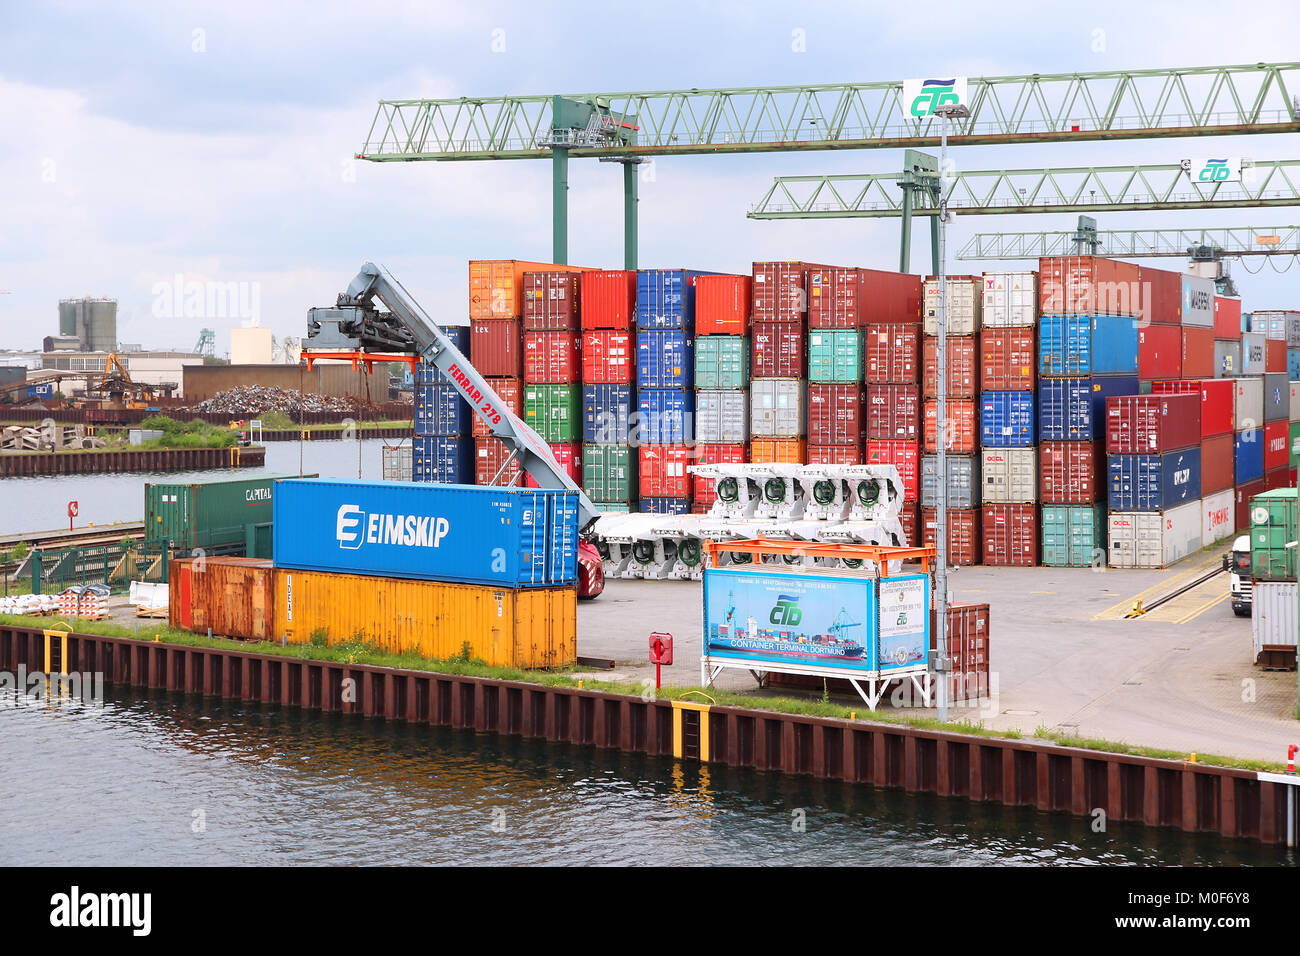 DORTMUND, GERMANY - JULY 16: Containers are loaded in Dortmund Port on July 16, 2012 in Germany. It is the largest - Stock Image